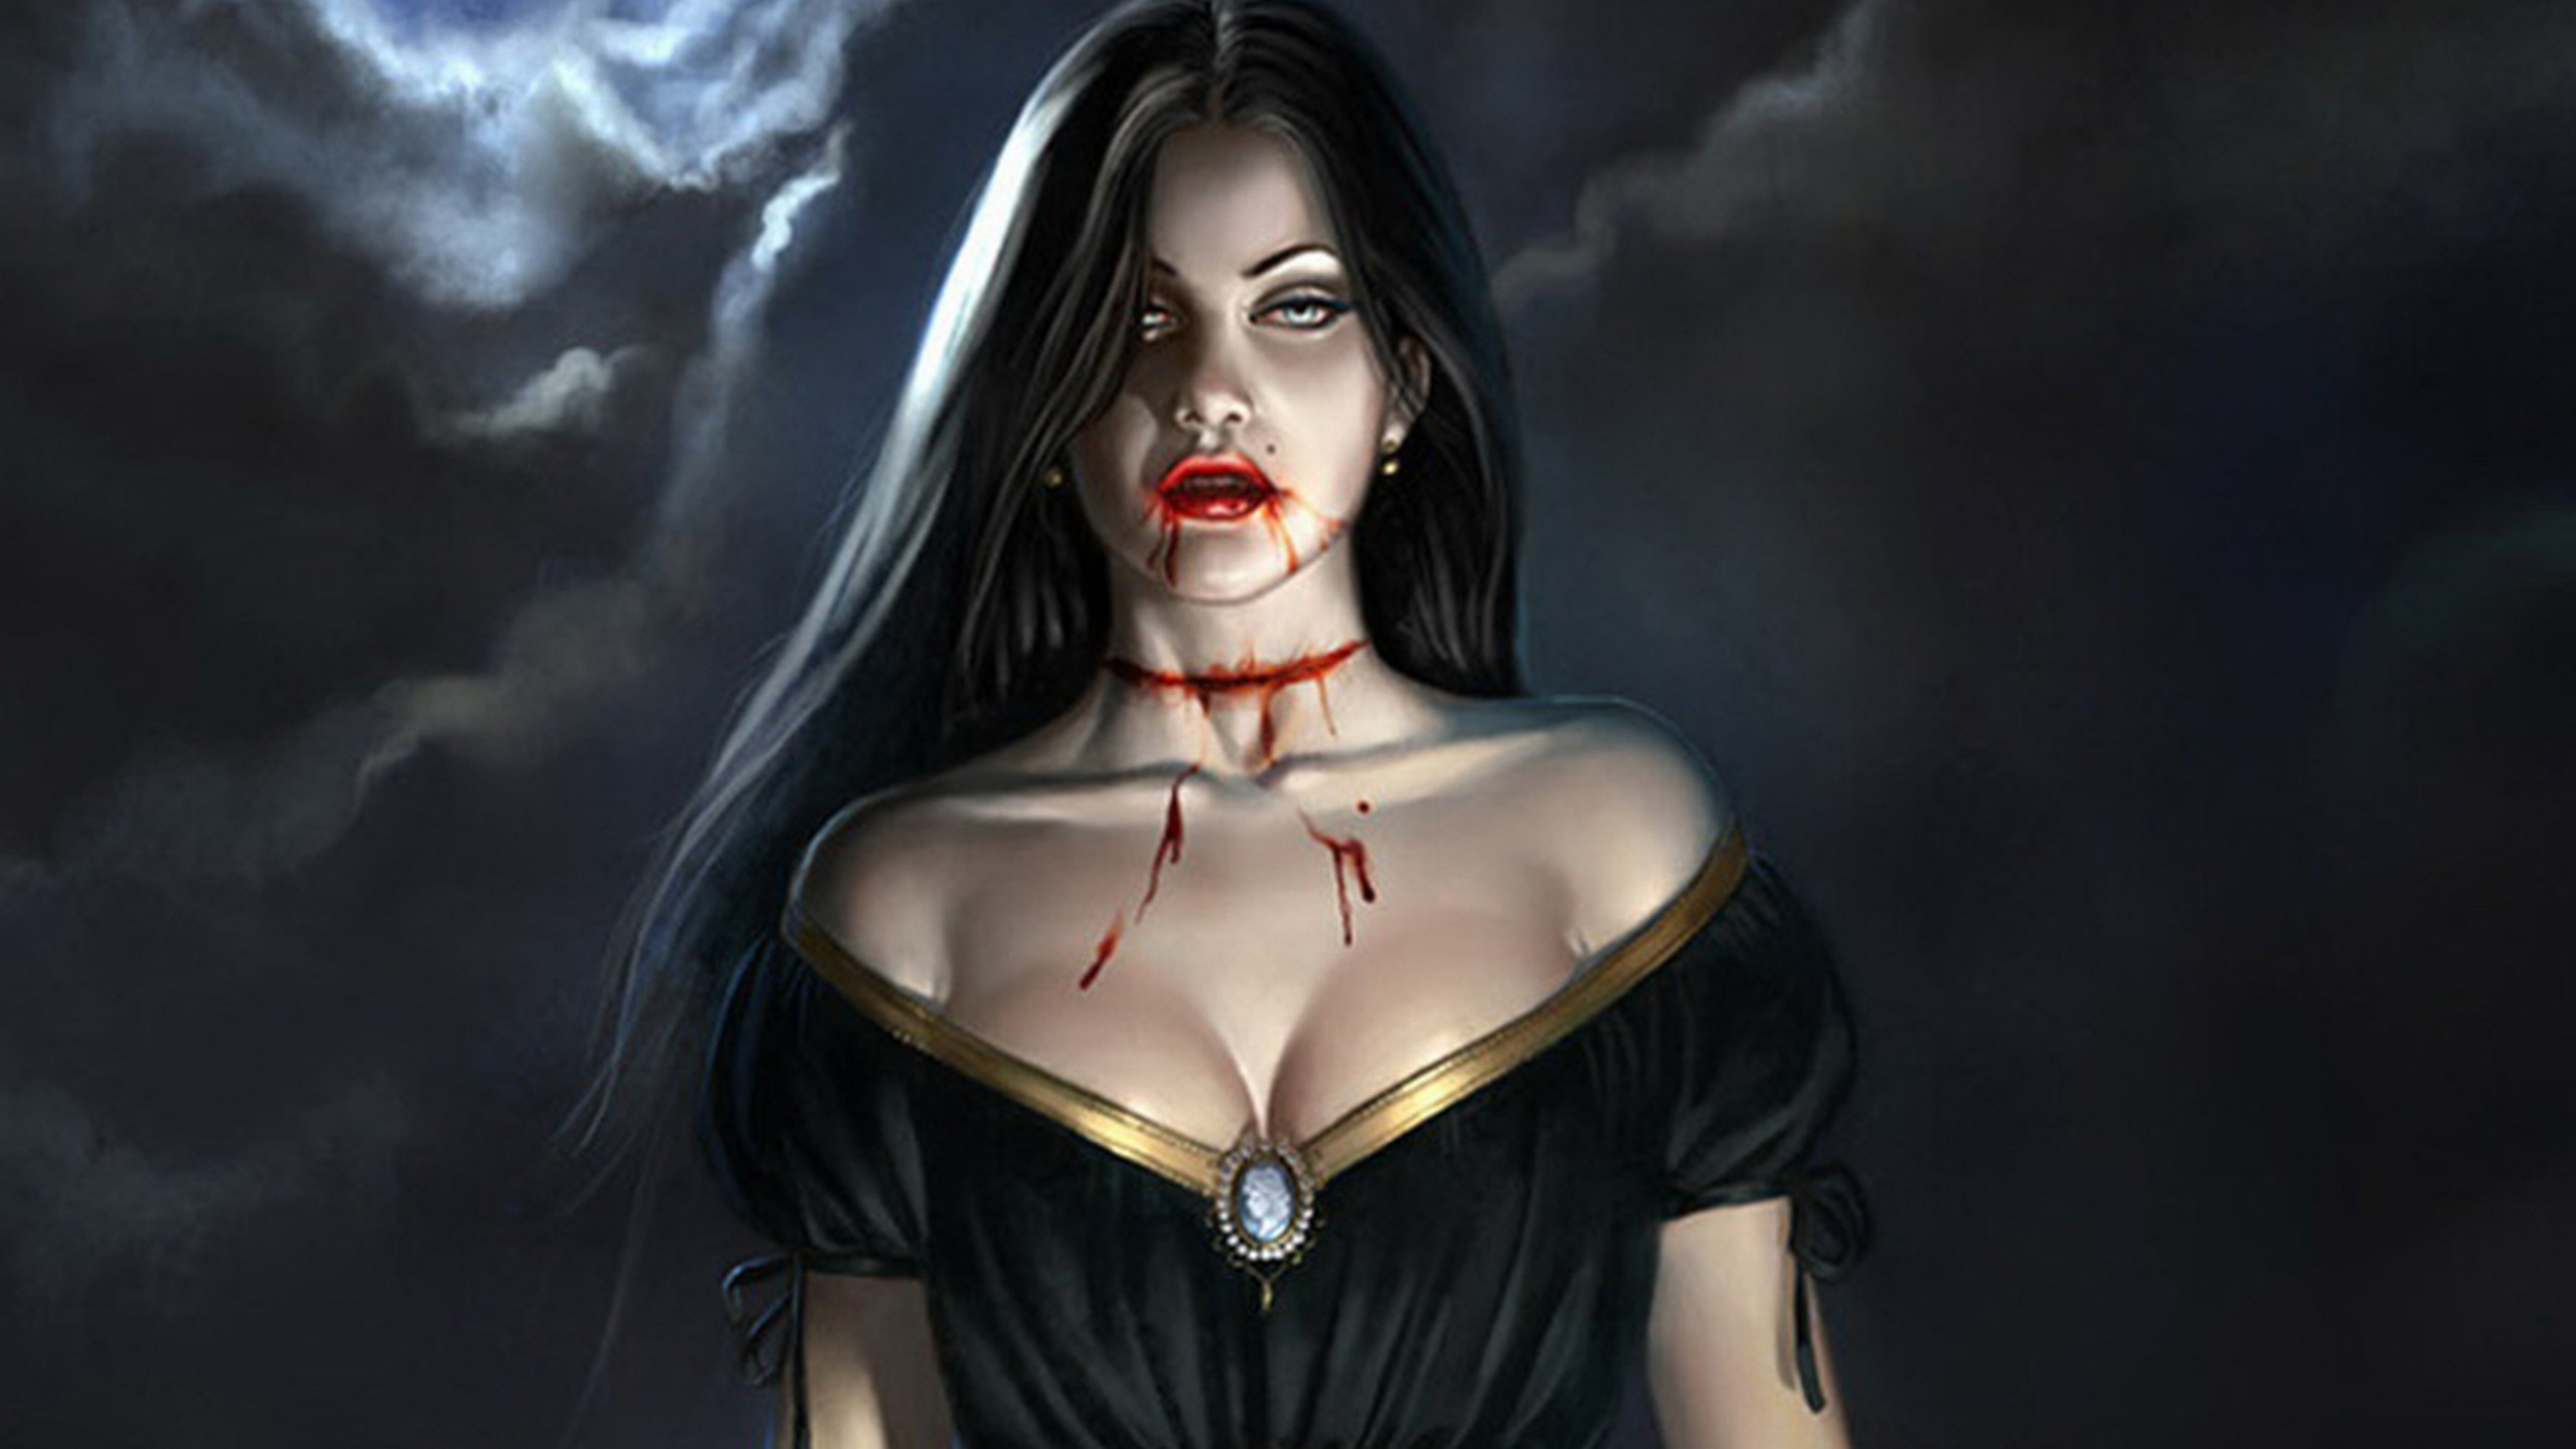 Naked vampire wallpaper erotic gallery